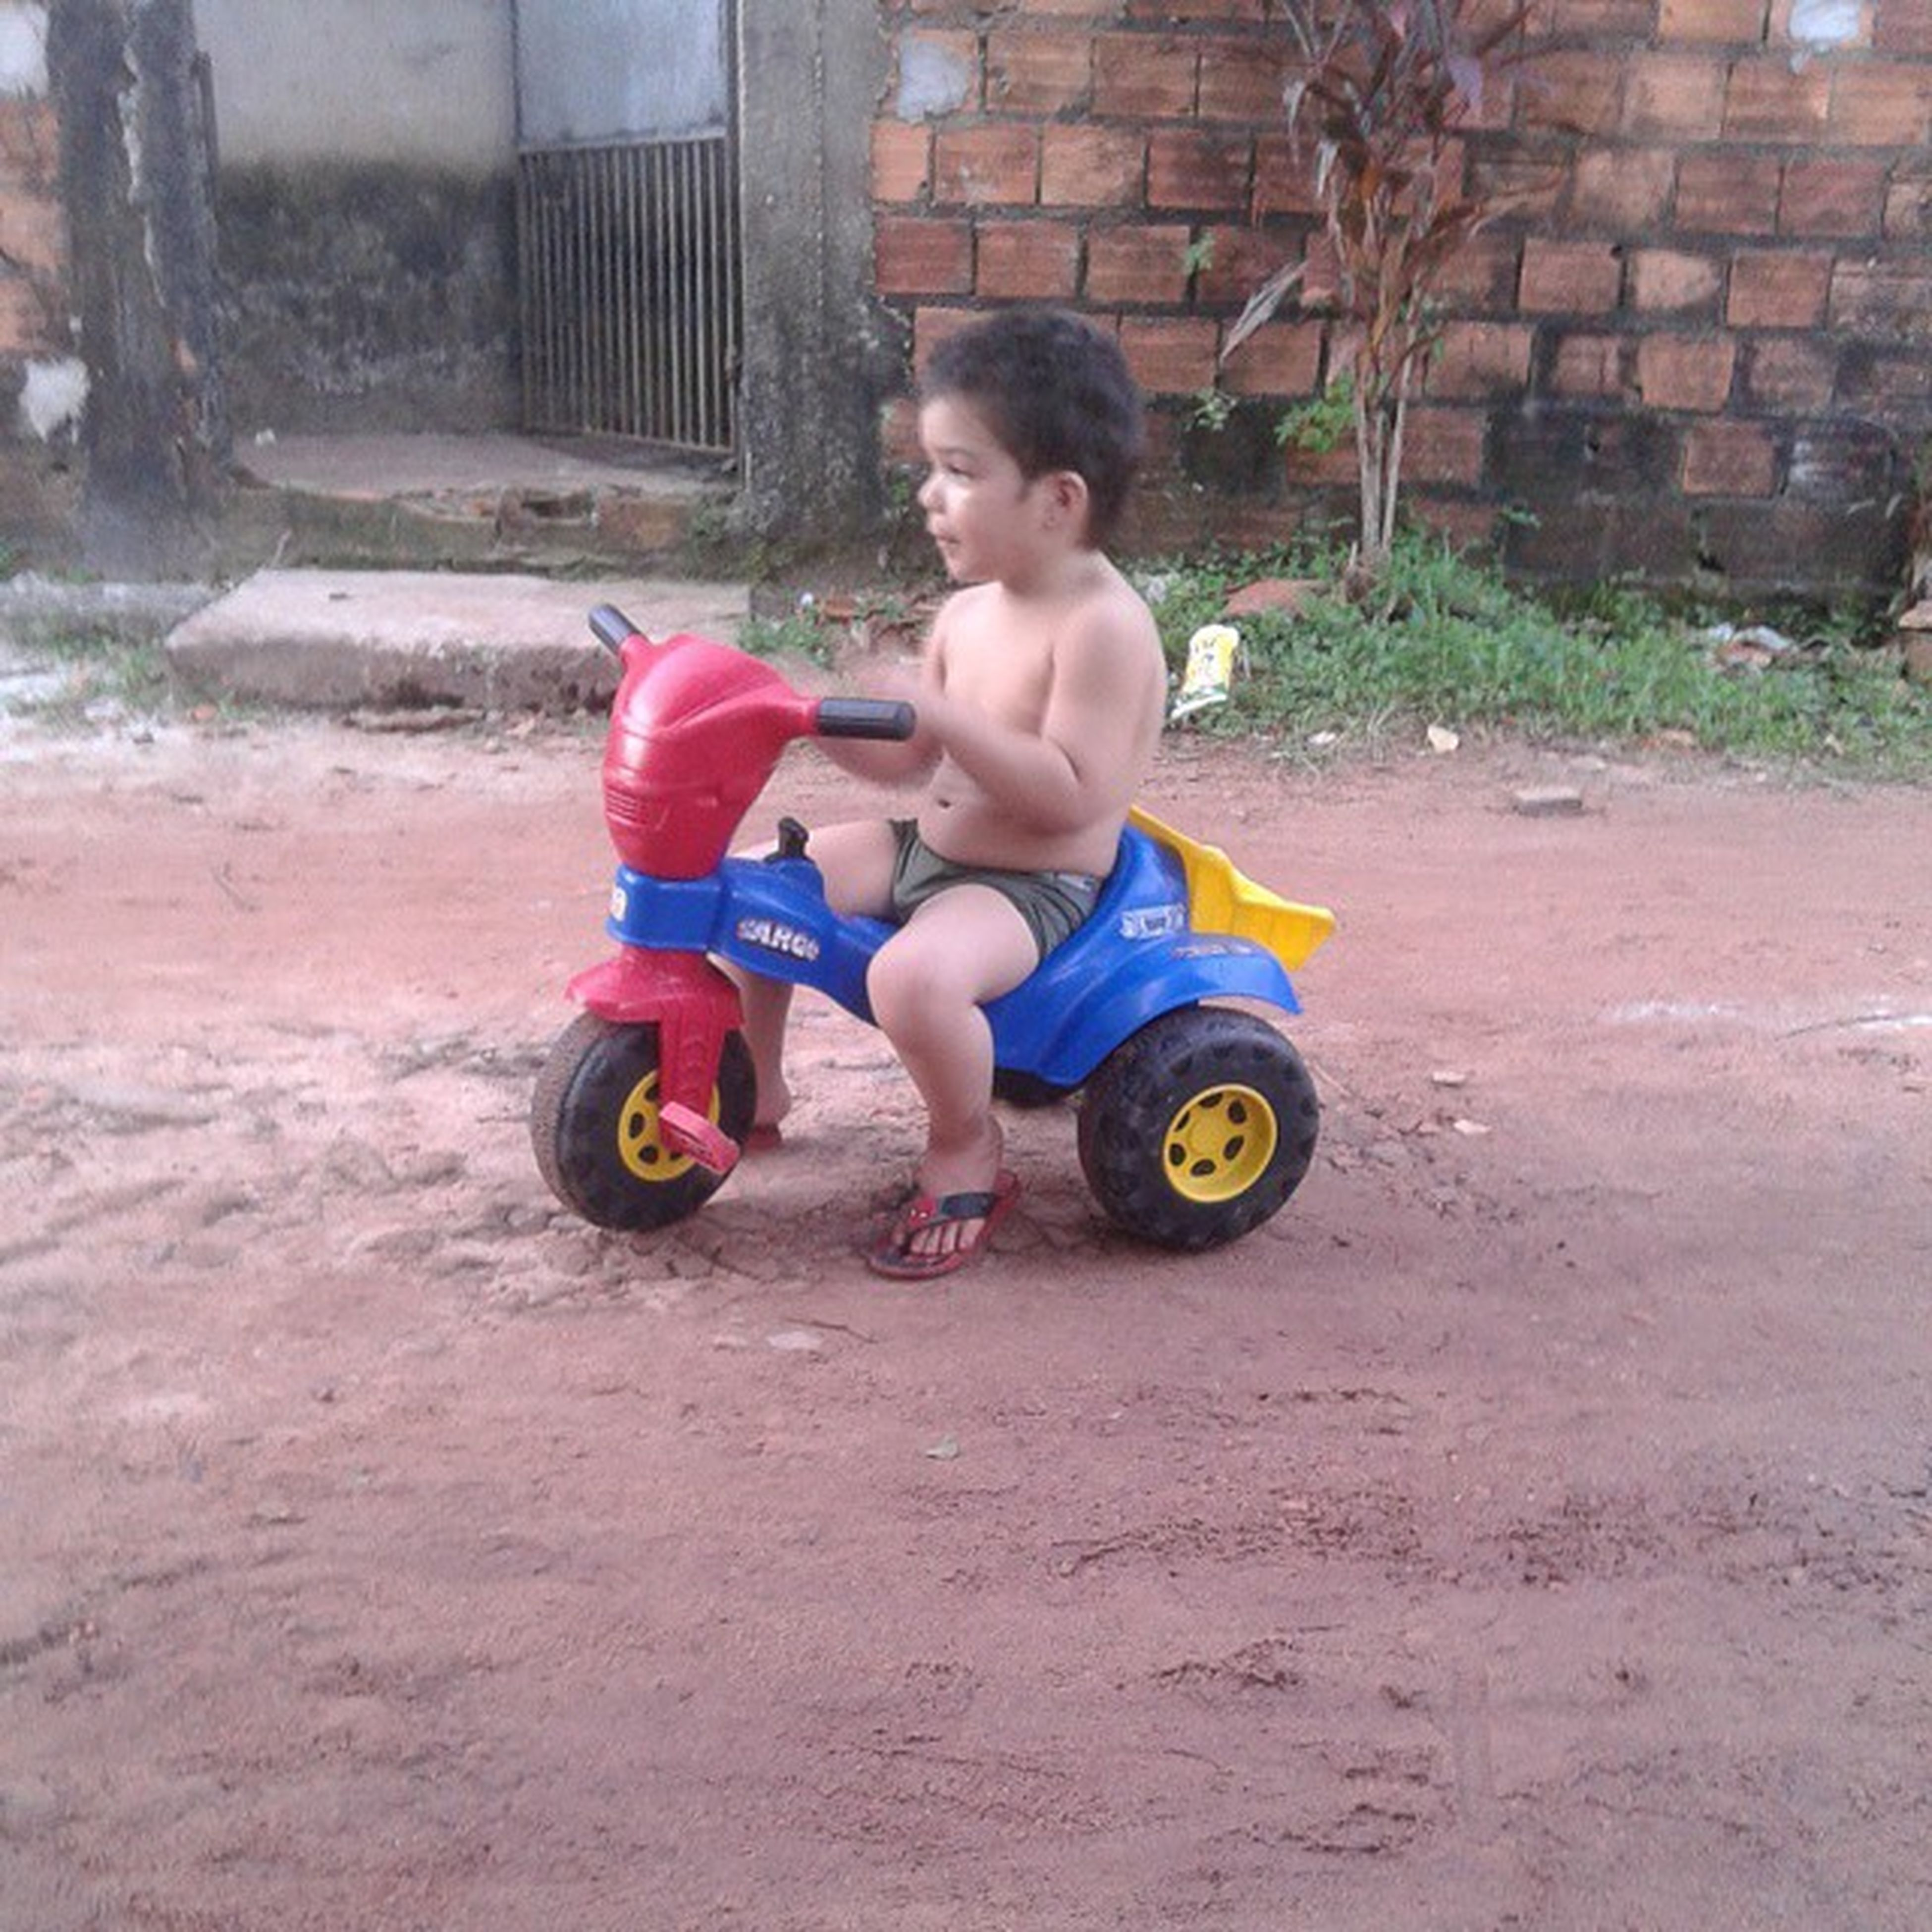 childhood, full length, elementary age, boys, lifestyles, person, leisure activity, casual clothing, girls, innocence, playful, playing, land vehicle, bicycle, cute, transportation, mode of transport, toy